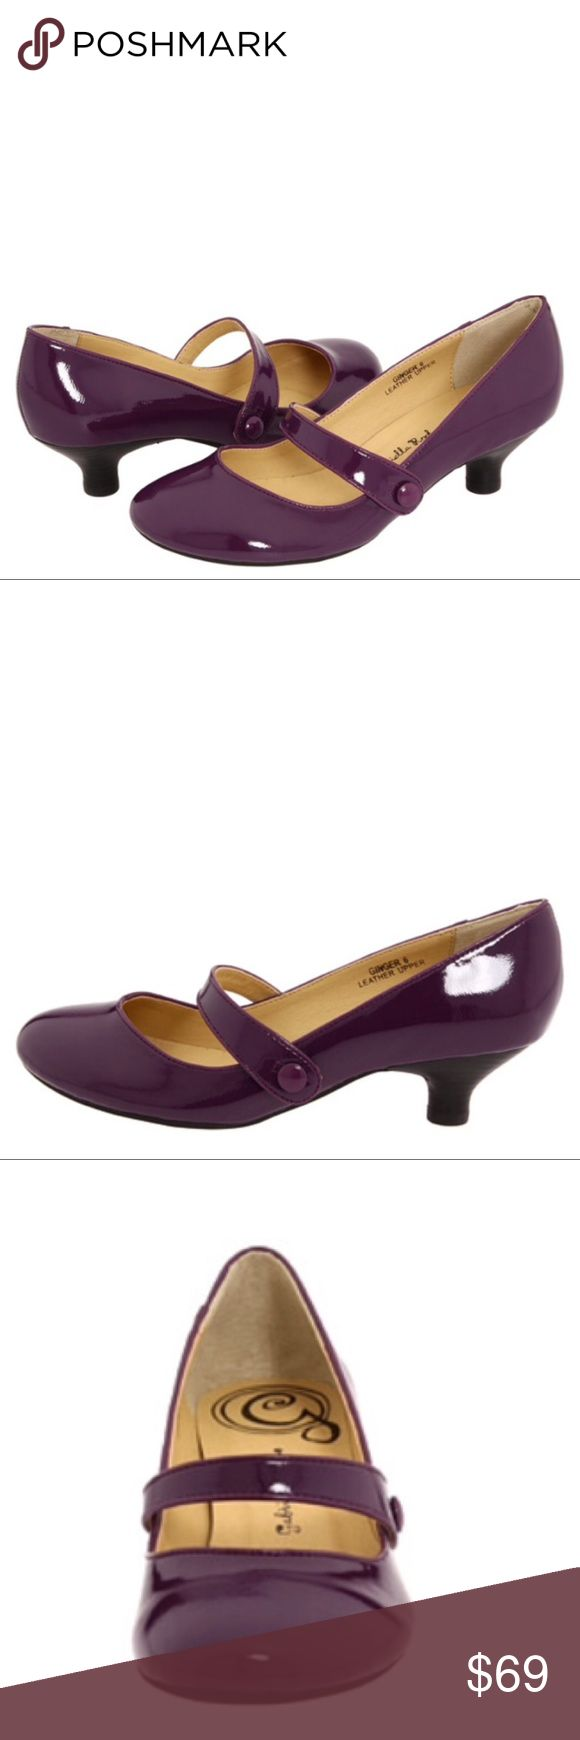 "🆕 Gabriella Rocha Mary Jane Shoes Gorgeous in patent leather. These vibrant Mary Janes are super comfortable and feature a padded footbed and stacked low heel. Heel height is 1 3/4 "" in total. Brand new, unworn. Box included. Gabriella Rocha Shoes"